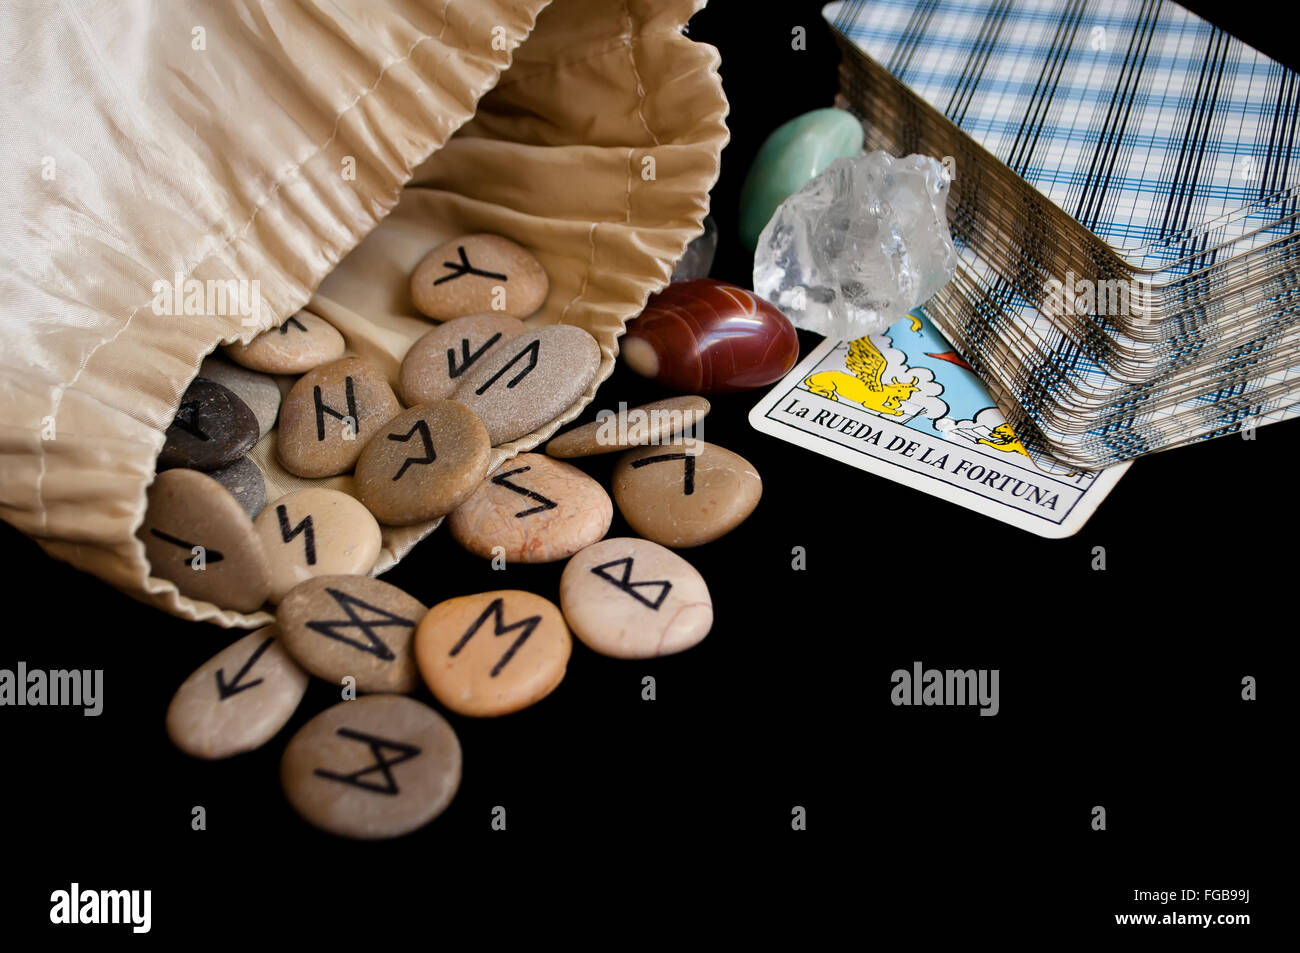 divination and prediction on runes and Tarot, mysticism or esoteric isolated on black background - Stock Image